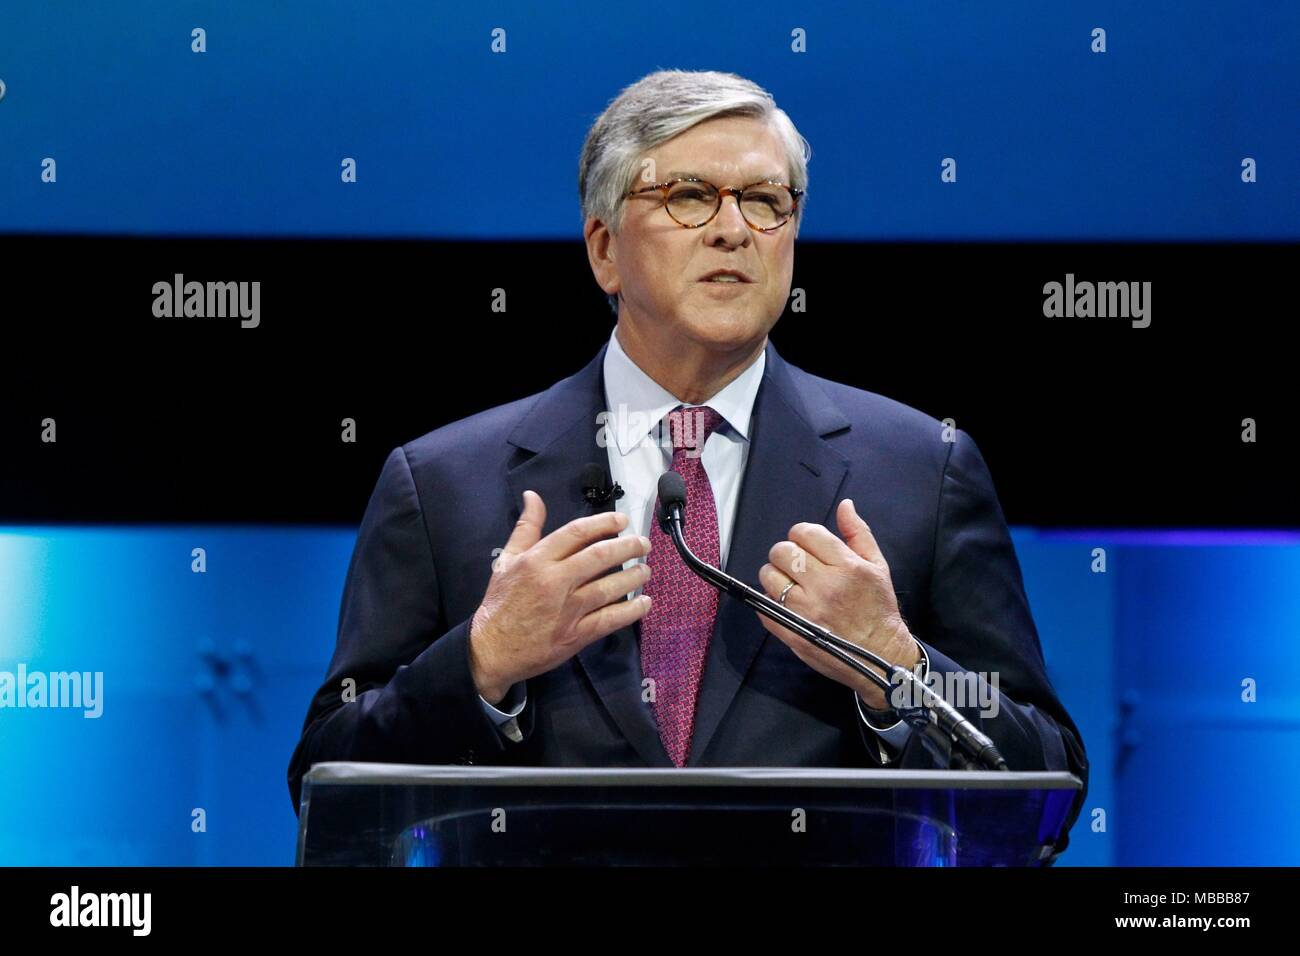 Las Vegas, NV, USA. 9th Apr, 2018. Gordon Smith (NAB President and CEO) in attendance for National Association of Broadcasters NAB Show - MON, Las Vegas Convention Center, Las Vegas, NV April 9, 2018. Credit: JA/Everett Collection/Alamy Live News Stock Photo